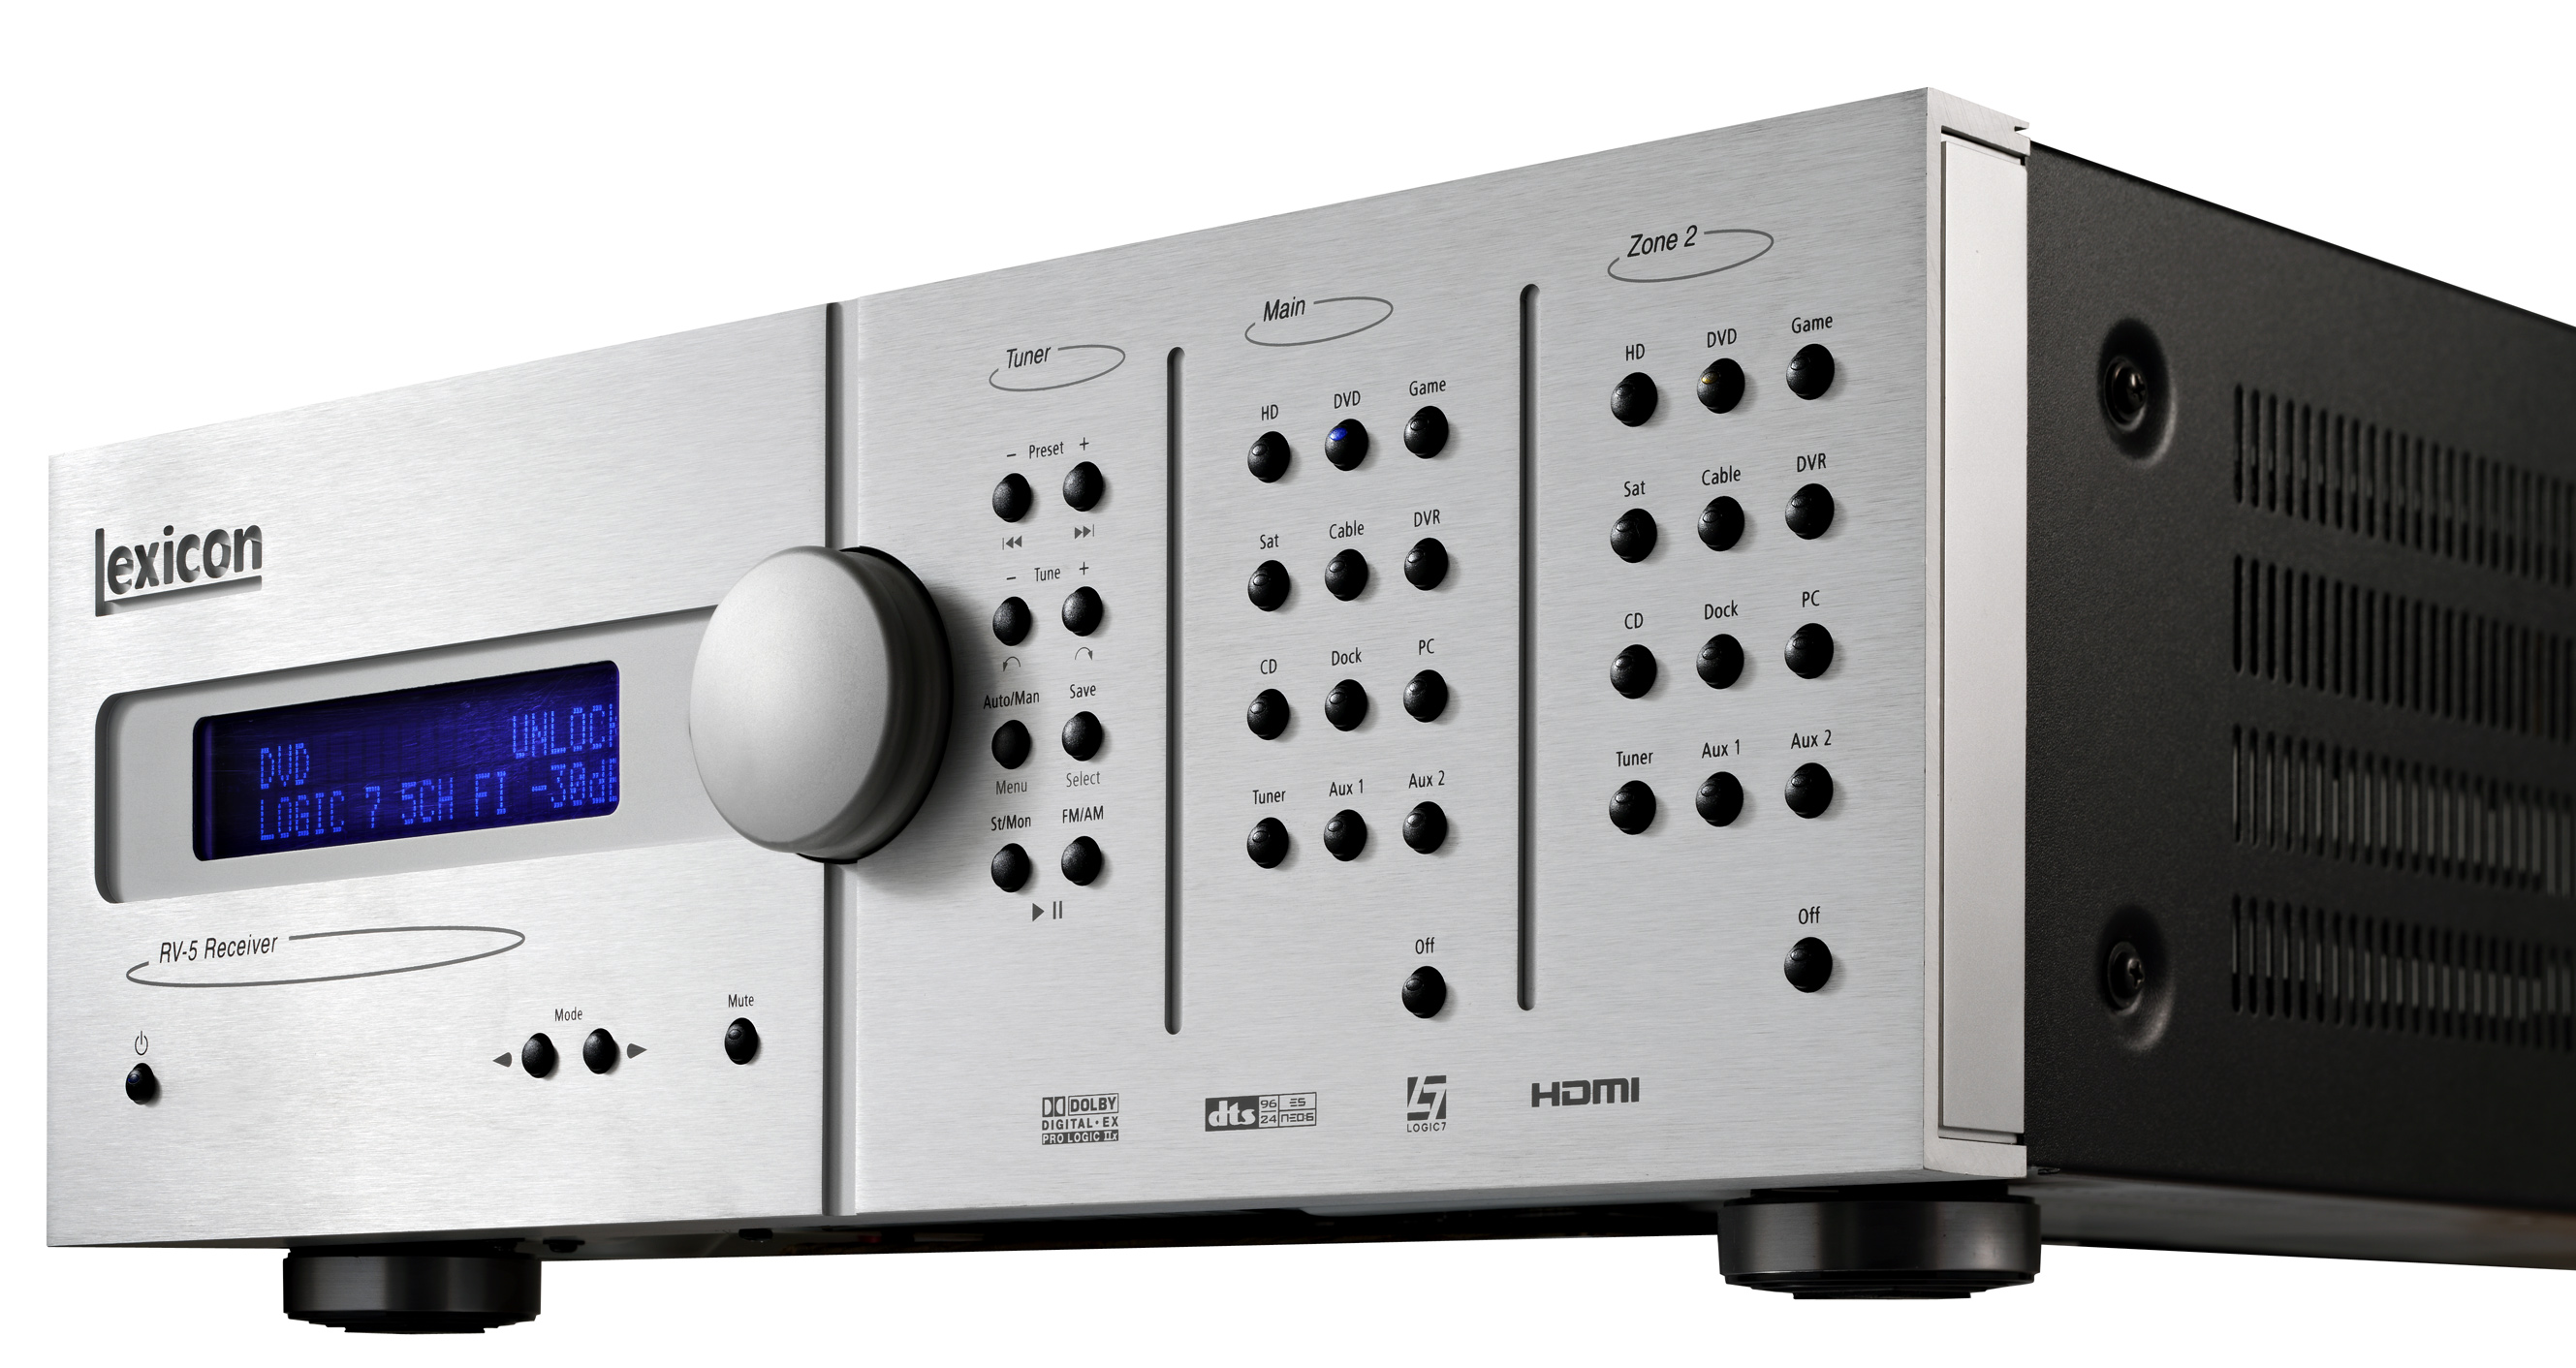 Lexicon RV-5 Receiver